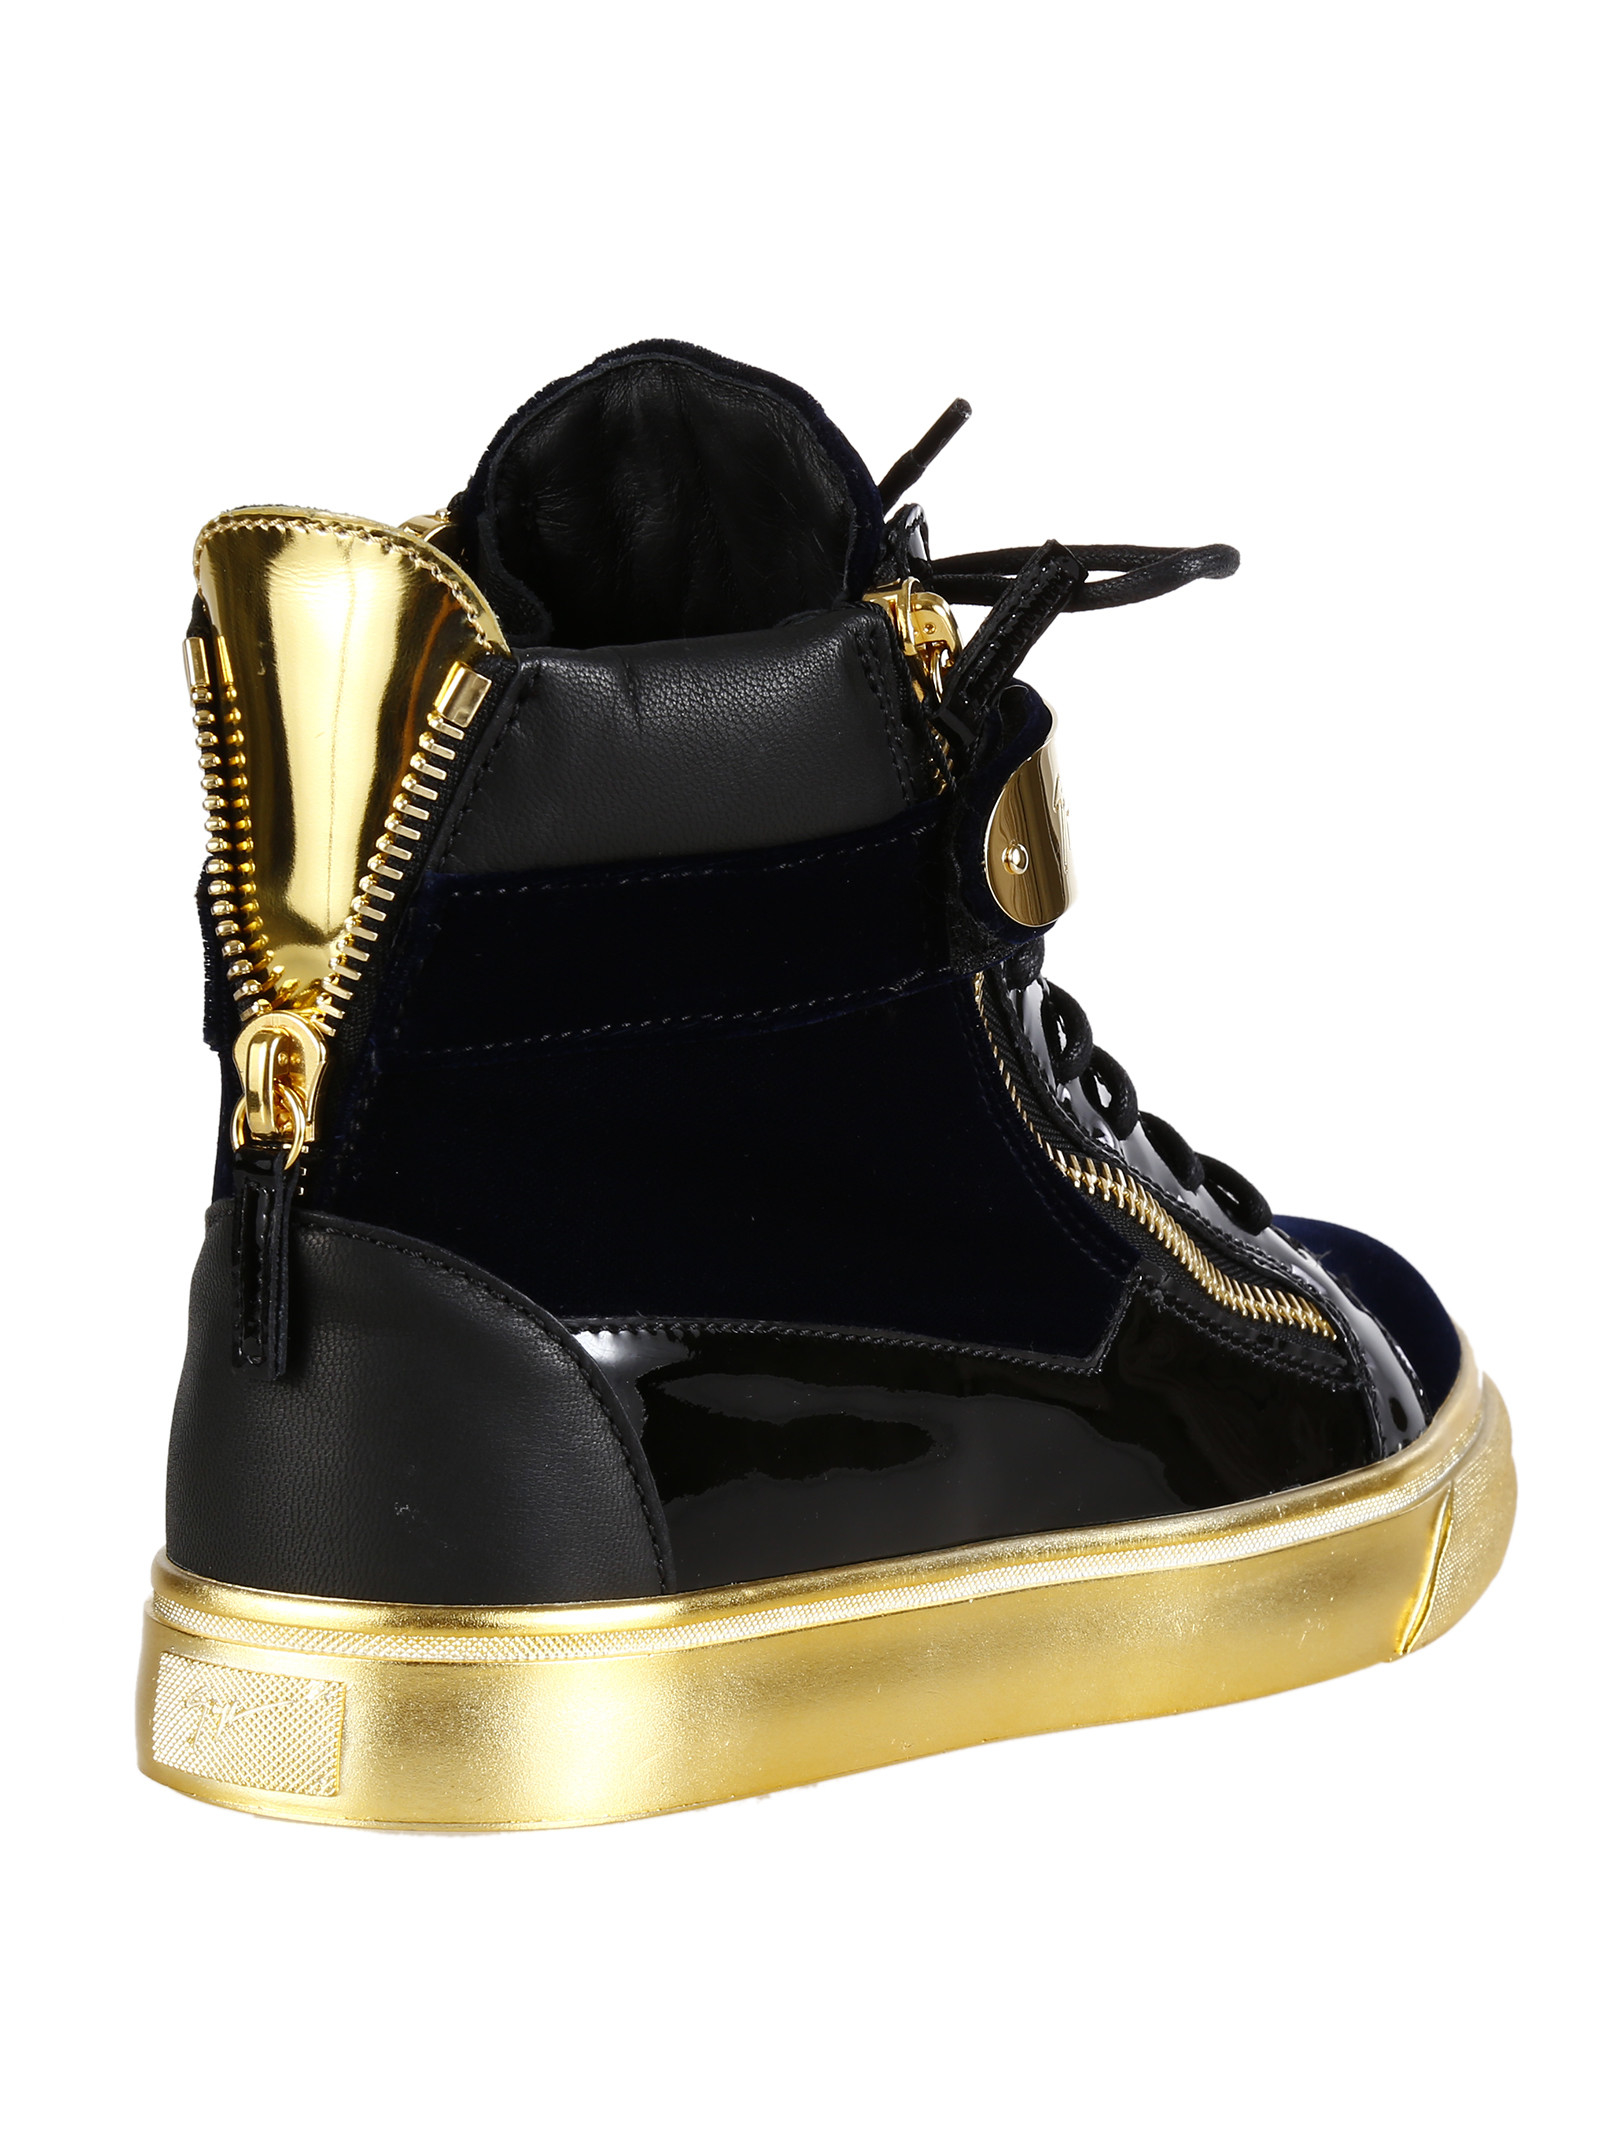 adidas black and gold high tops